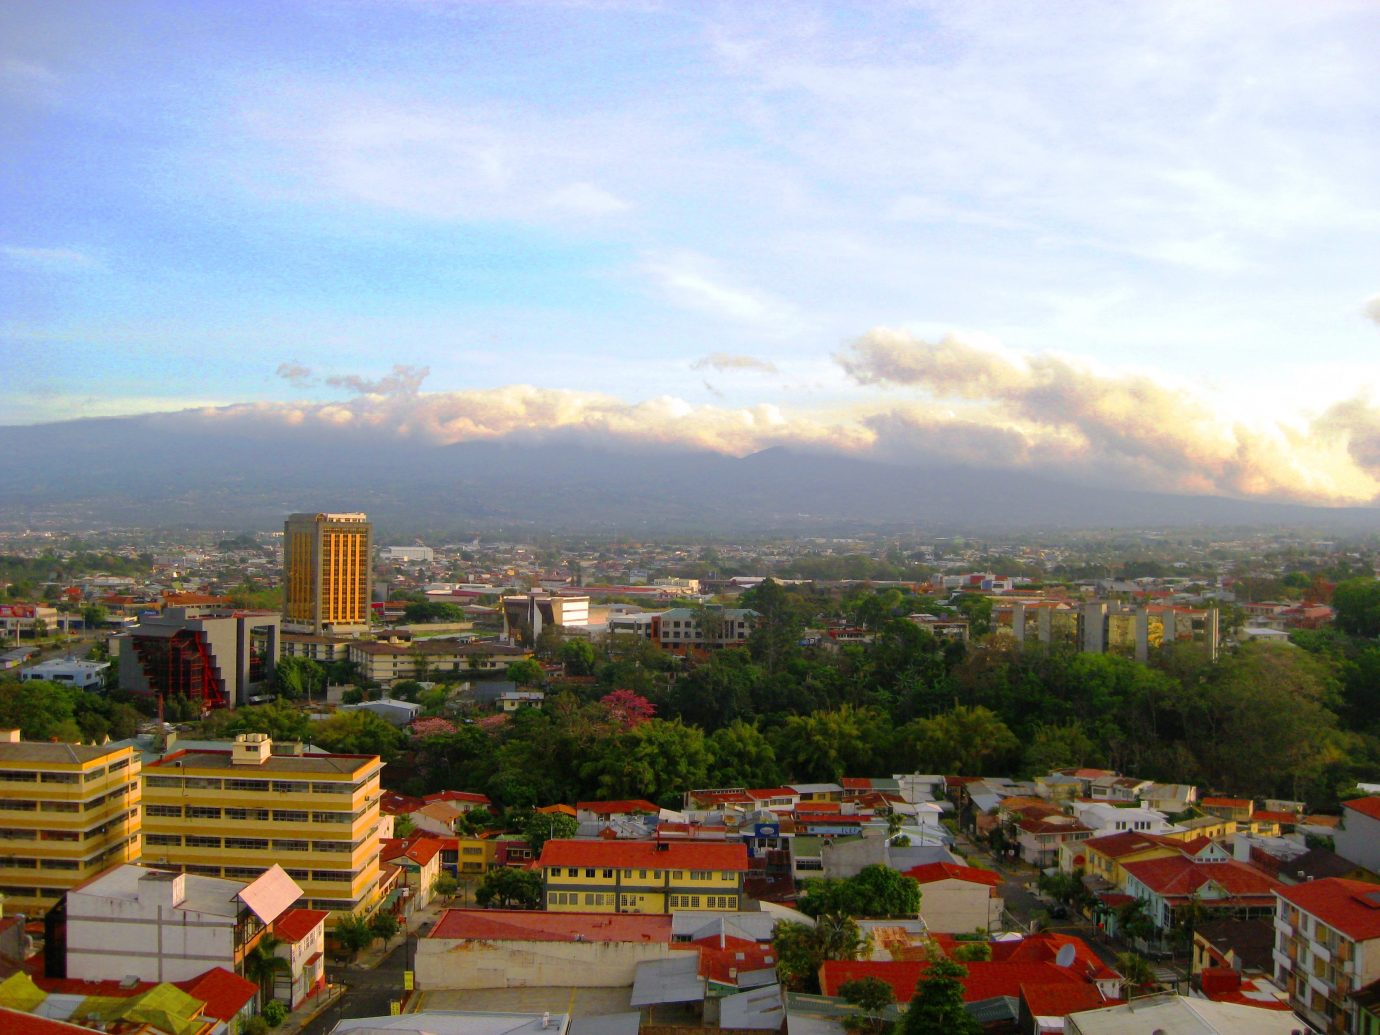 Cityscape of San José in Costa Rica